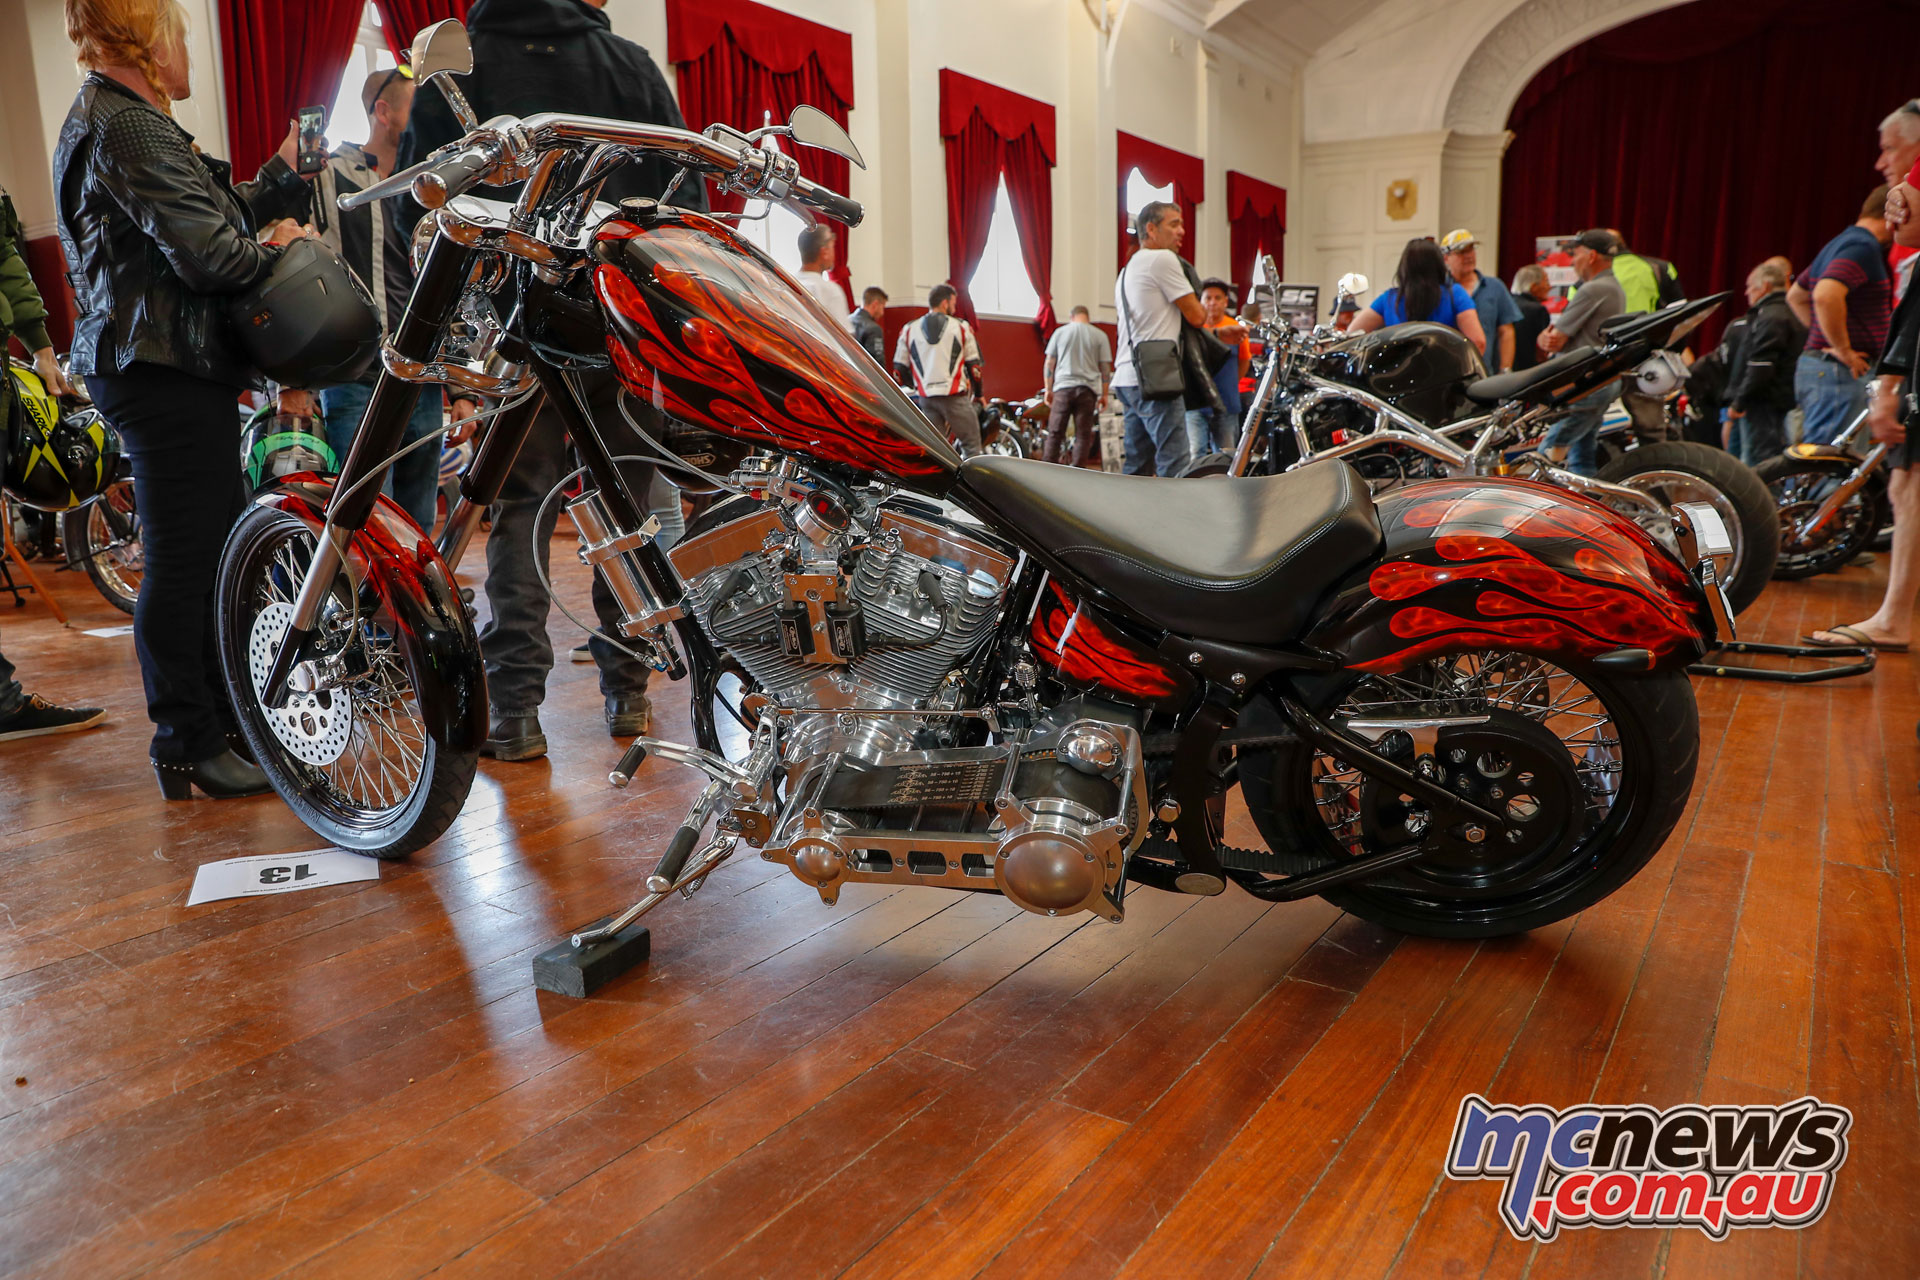 York Motorcycle Festival Show and Shine